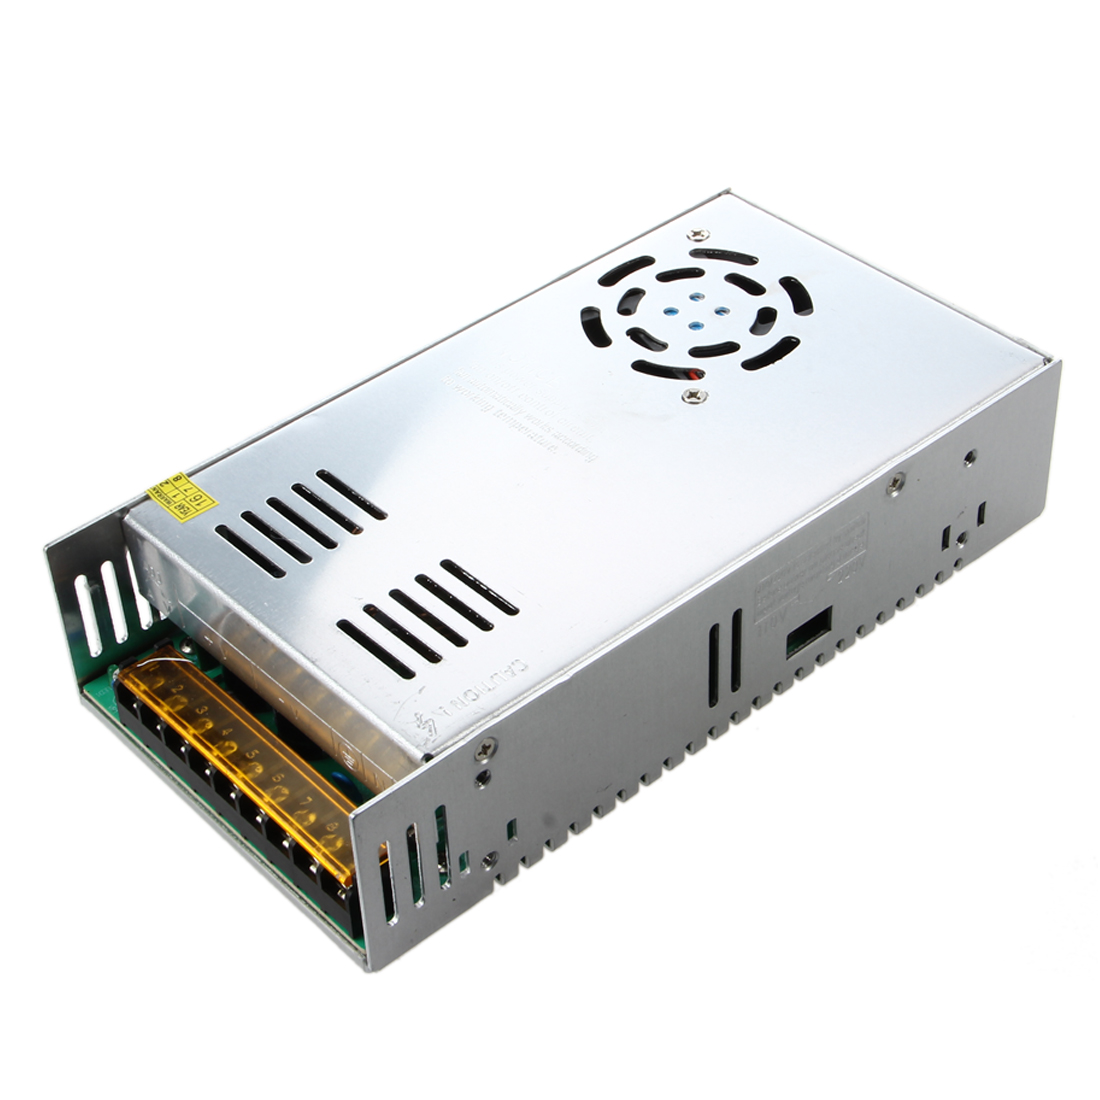 400W Switch Power Supply Driver Schakel het stuurprogramma van de voeding for LED Strip Light DC 12V 33A power supply 24v 800w dc power adapter ac110 220v non waterproof led driver 33a ups for strip lamps wholesale 1pcs